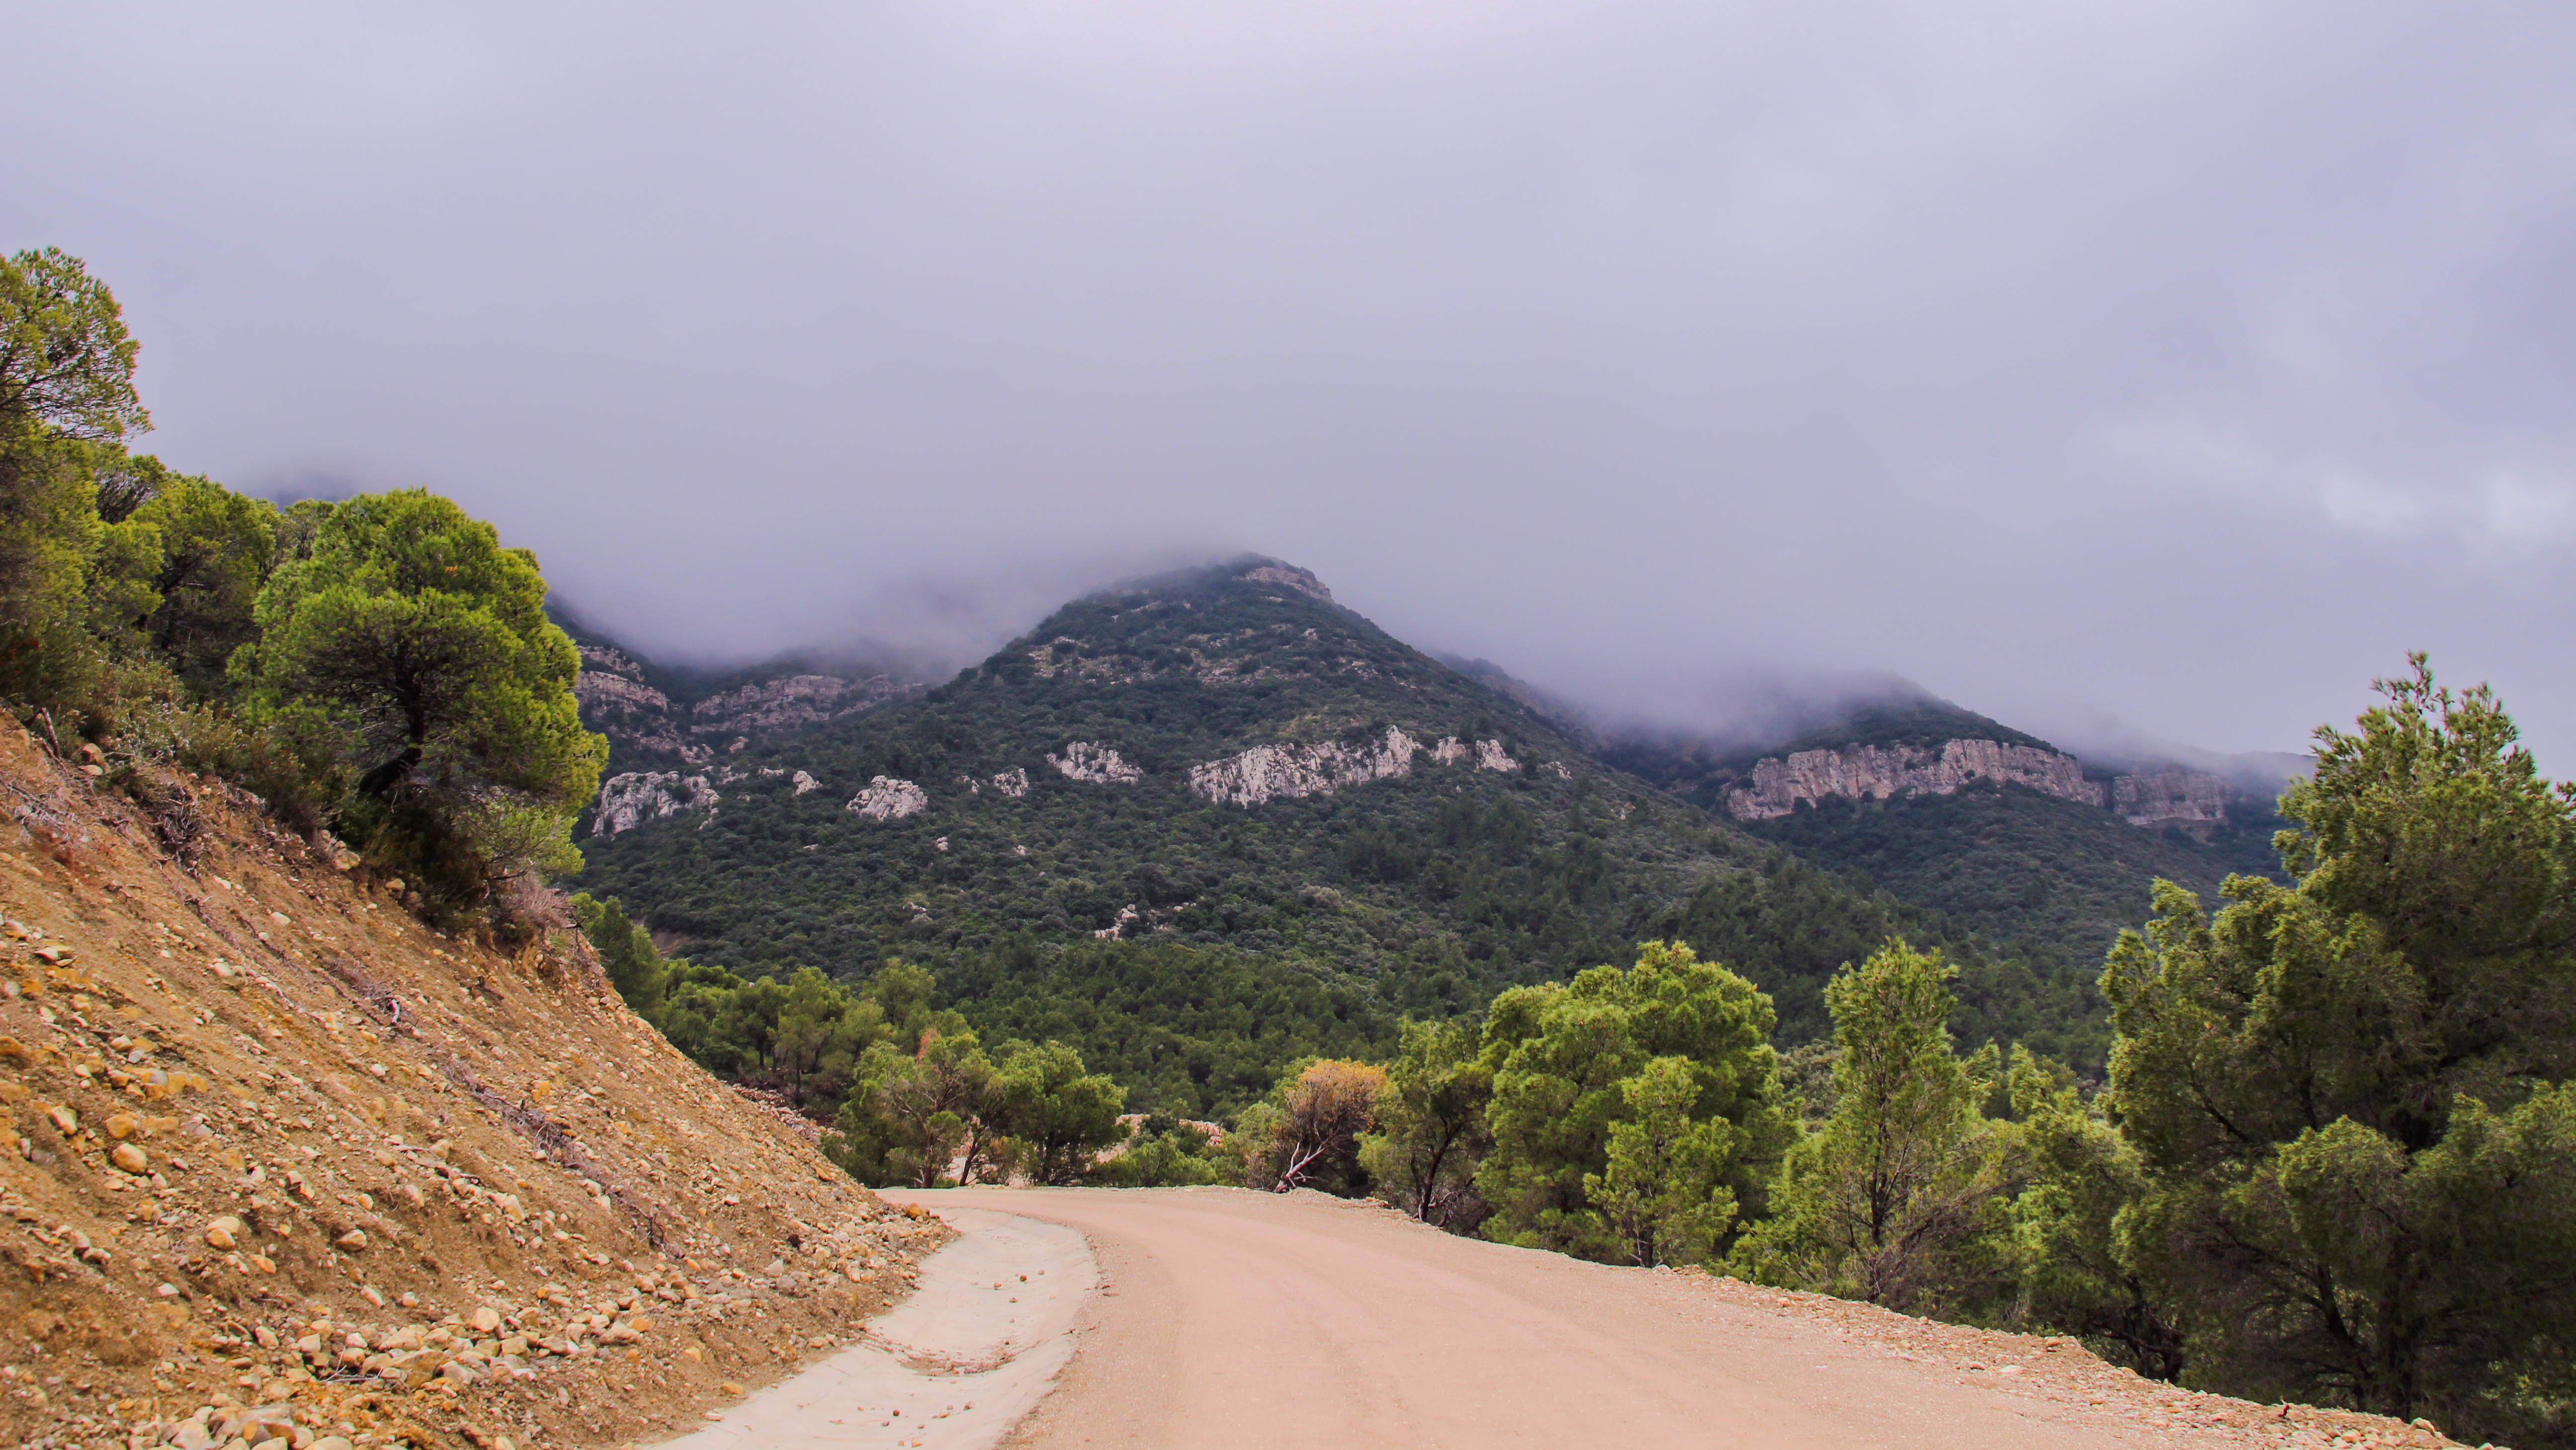 A view at the National Park of Djebel Serj in Siliana. (Wikimedia)